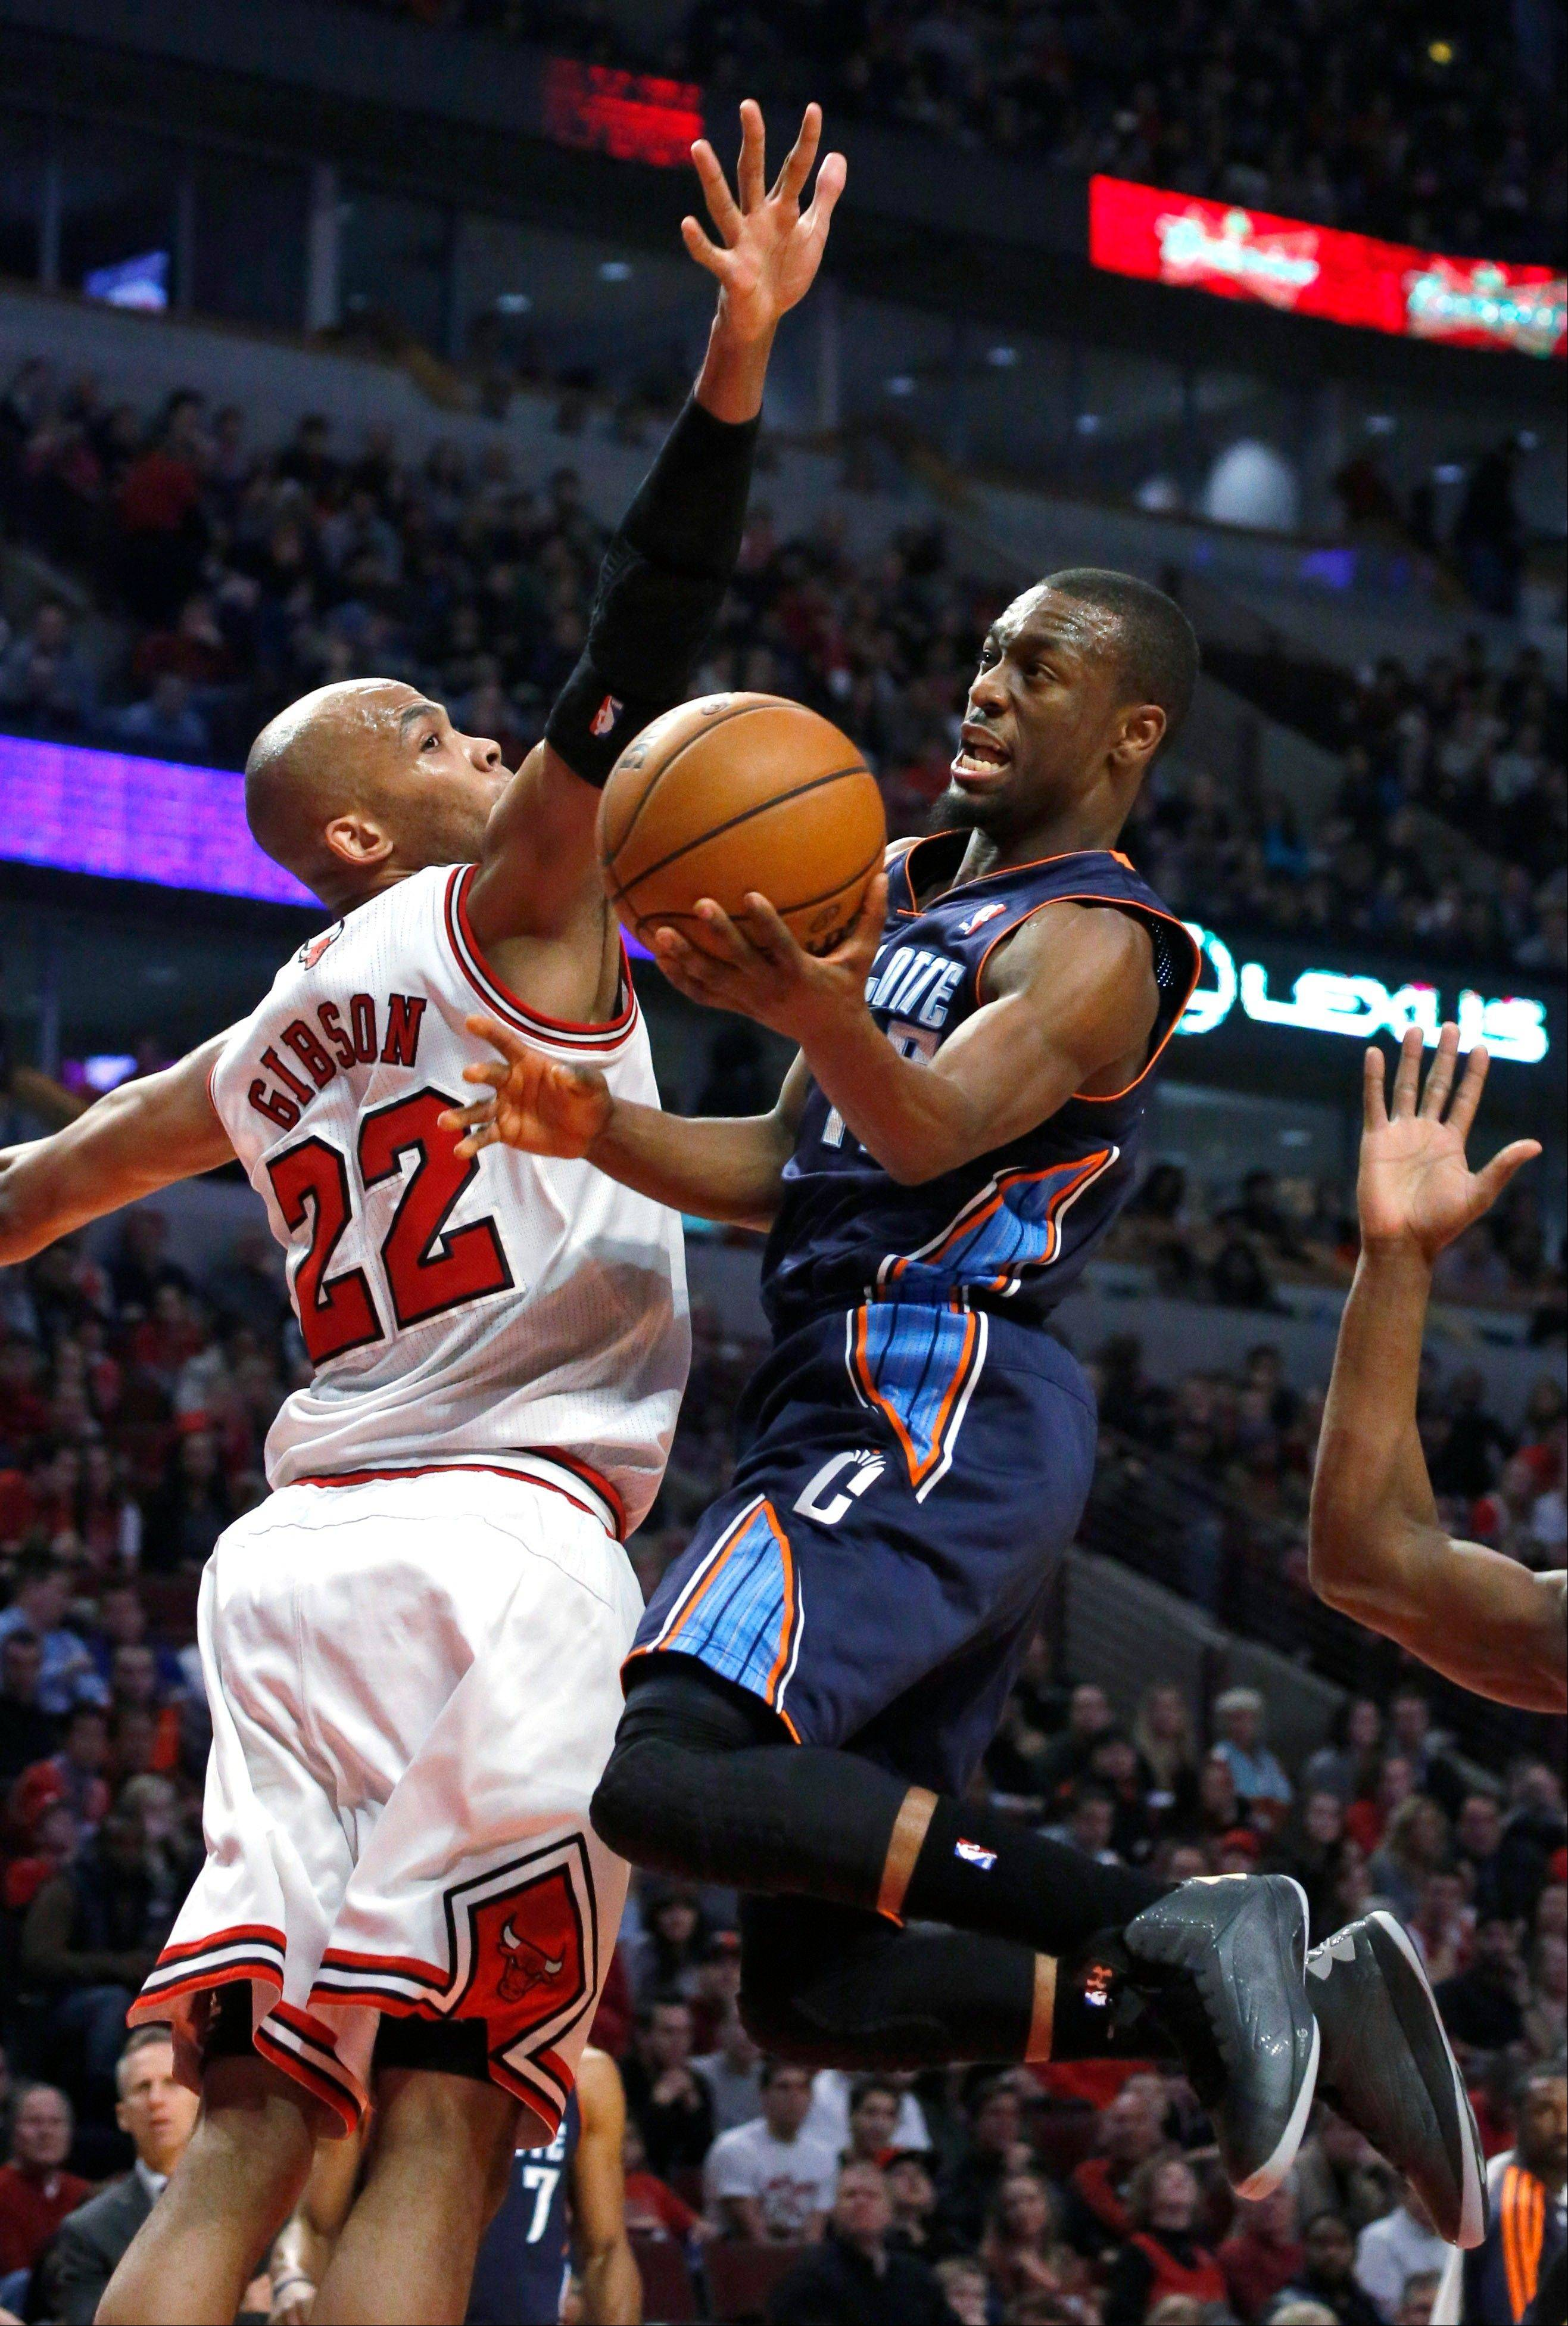 Charlotte Bobcats guard Kemba Walker (15) shoots past Chicago Bulls forward Taj Gibson (22) during the first half of an NBA basketball game Monday, Dec. 31, 2012, in Chicago.